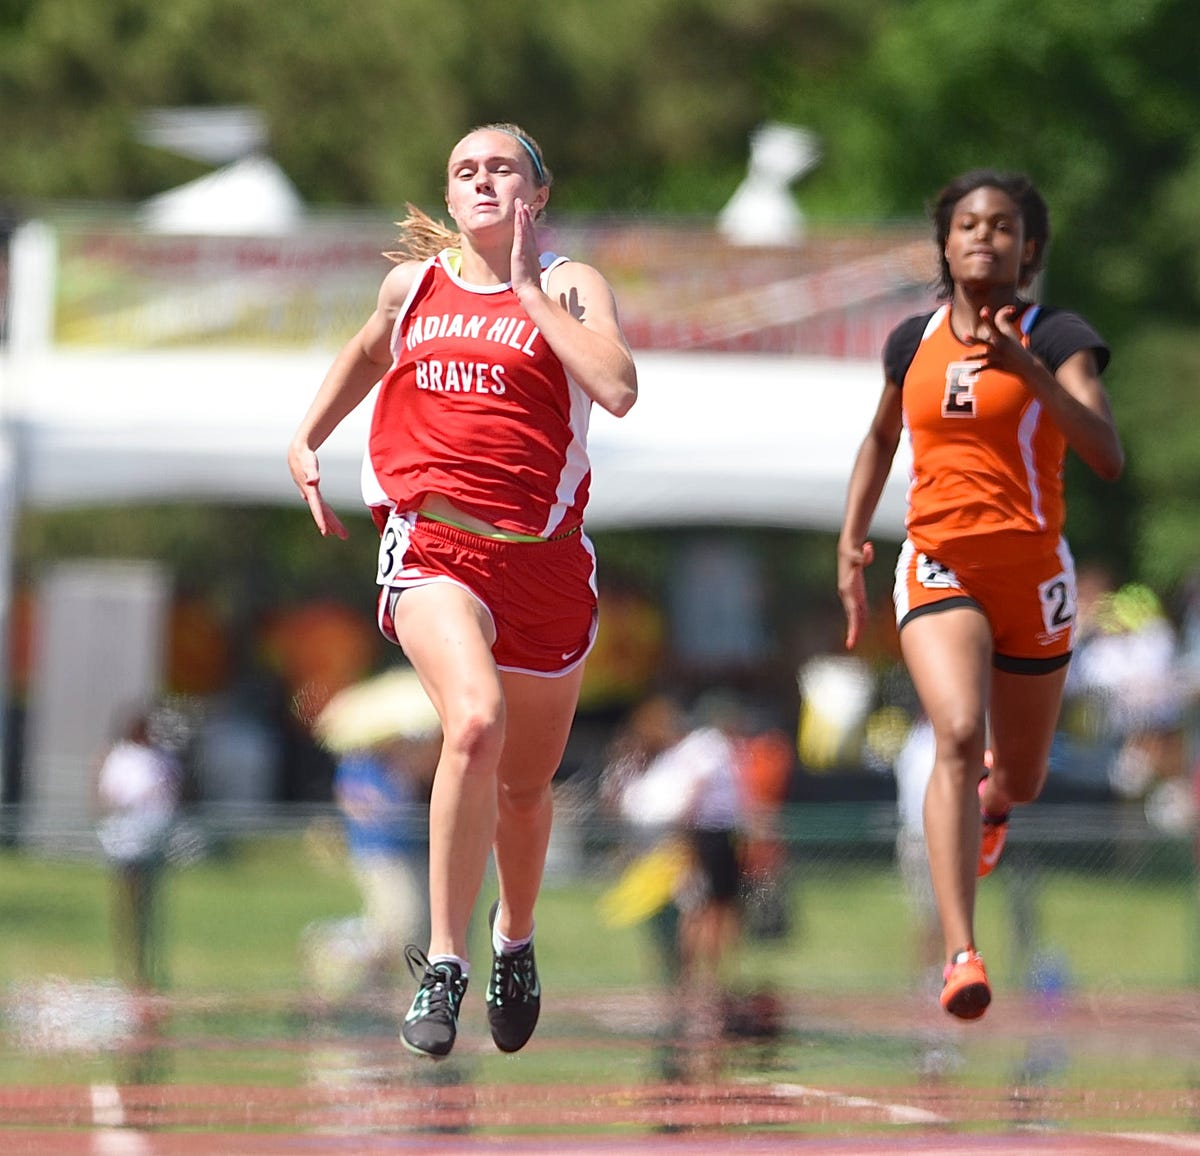 Spring All Stars: 2016 Ohio girls track & field